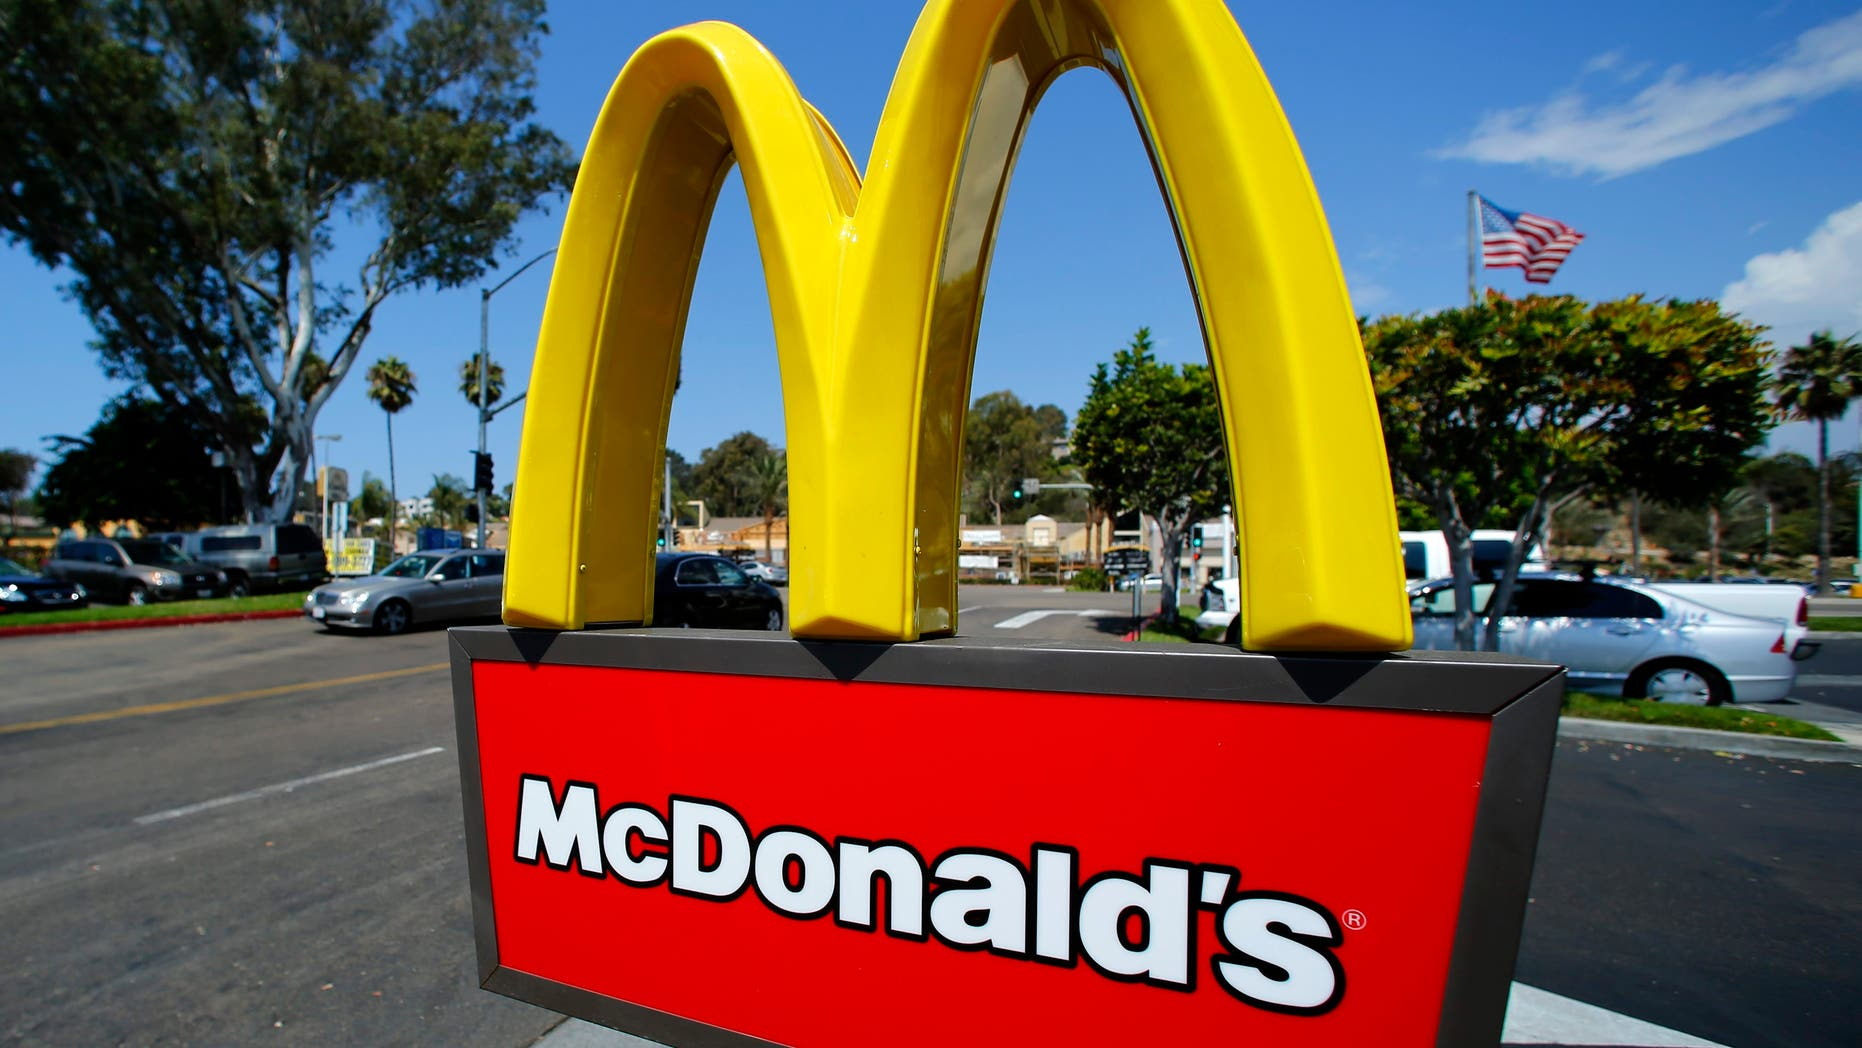 A McDonald's sign is shown at the entrance to one of the company's restaurants in Del Mar, California September 10, 2012. REUTERS/Mike Blake (UNITED STATES - Tags: BUSINESS)